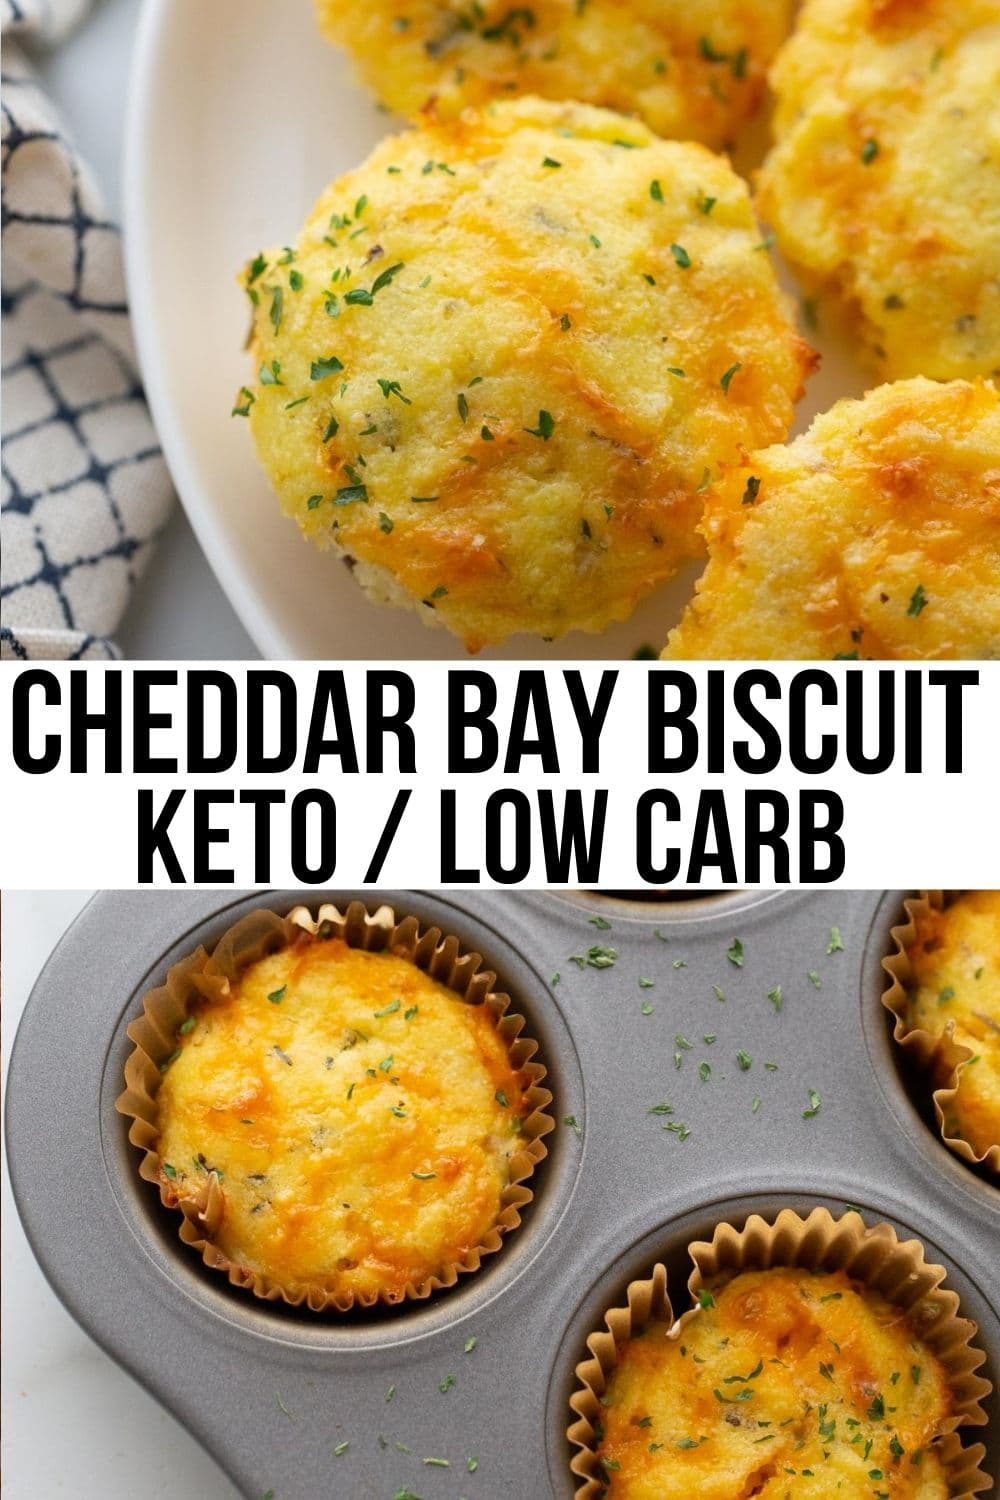 cheddar bay biscuits and garlic and parsley on a muffin tin and plate